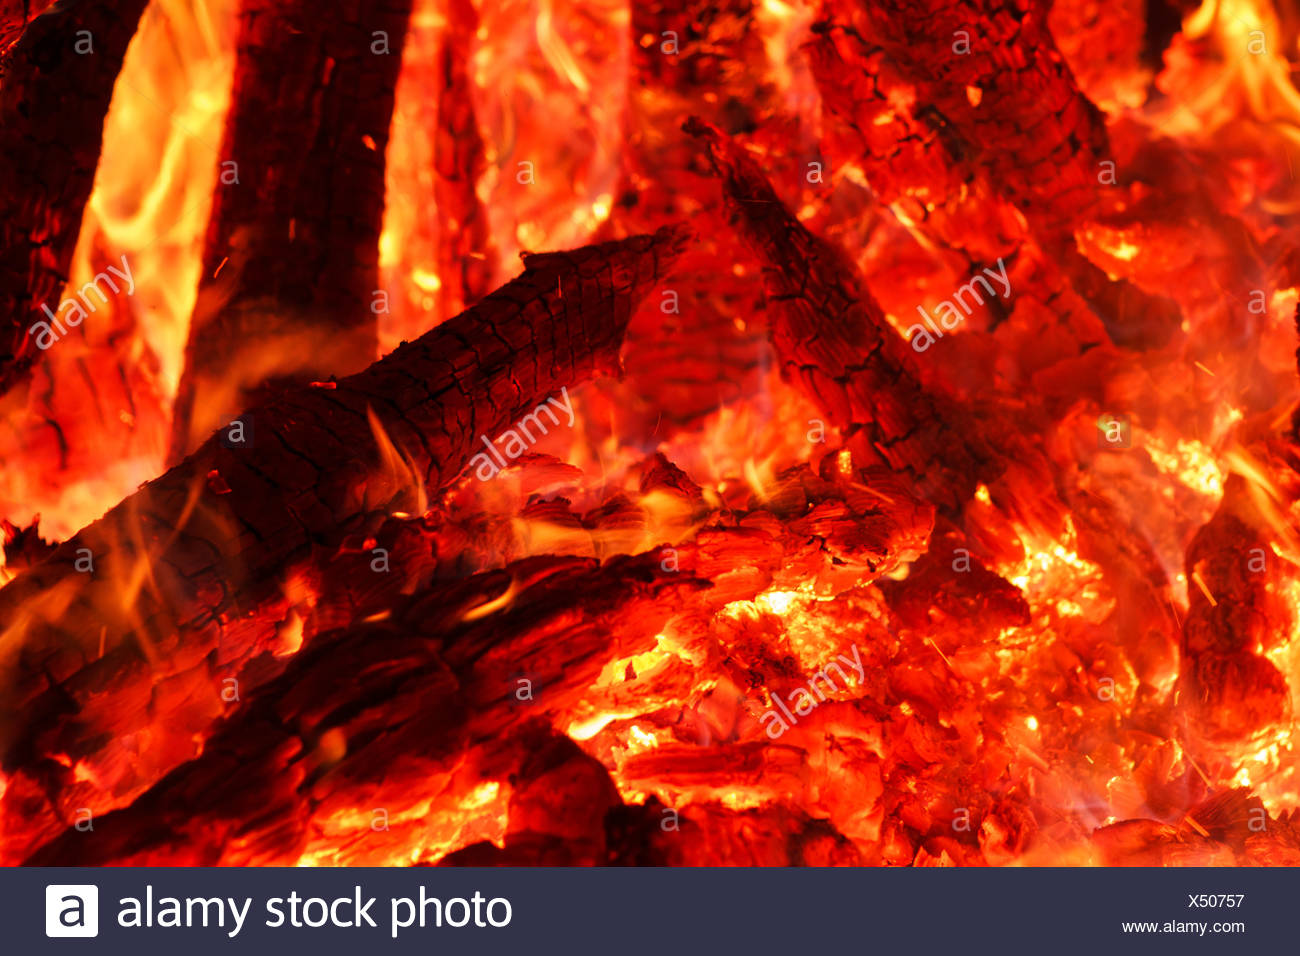 Flaring heat fire and coals - Stock Image